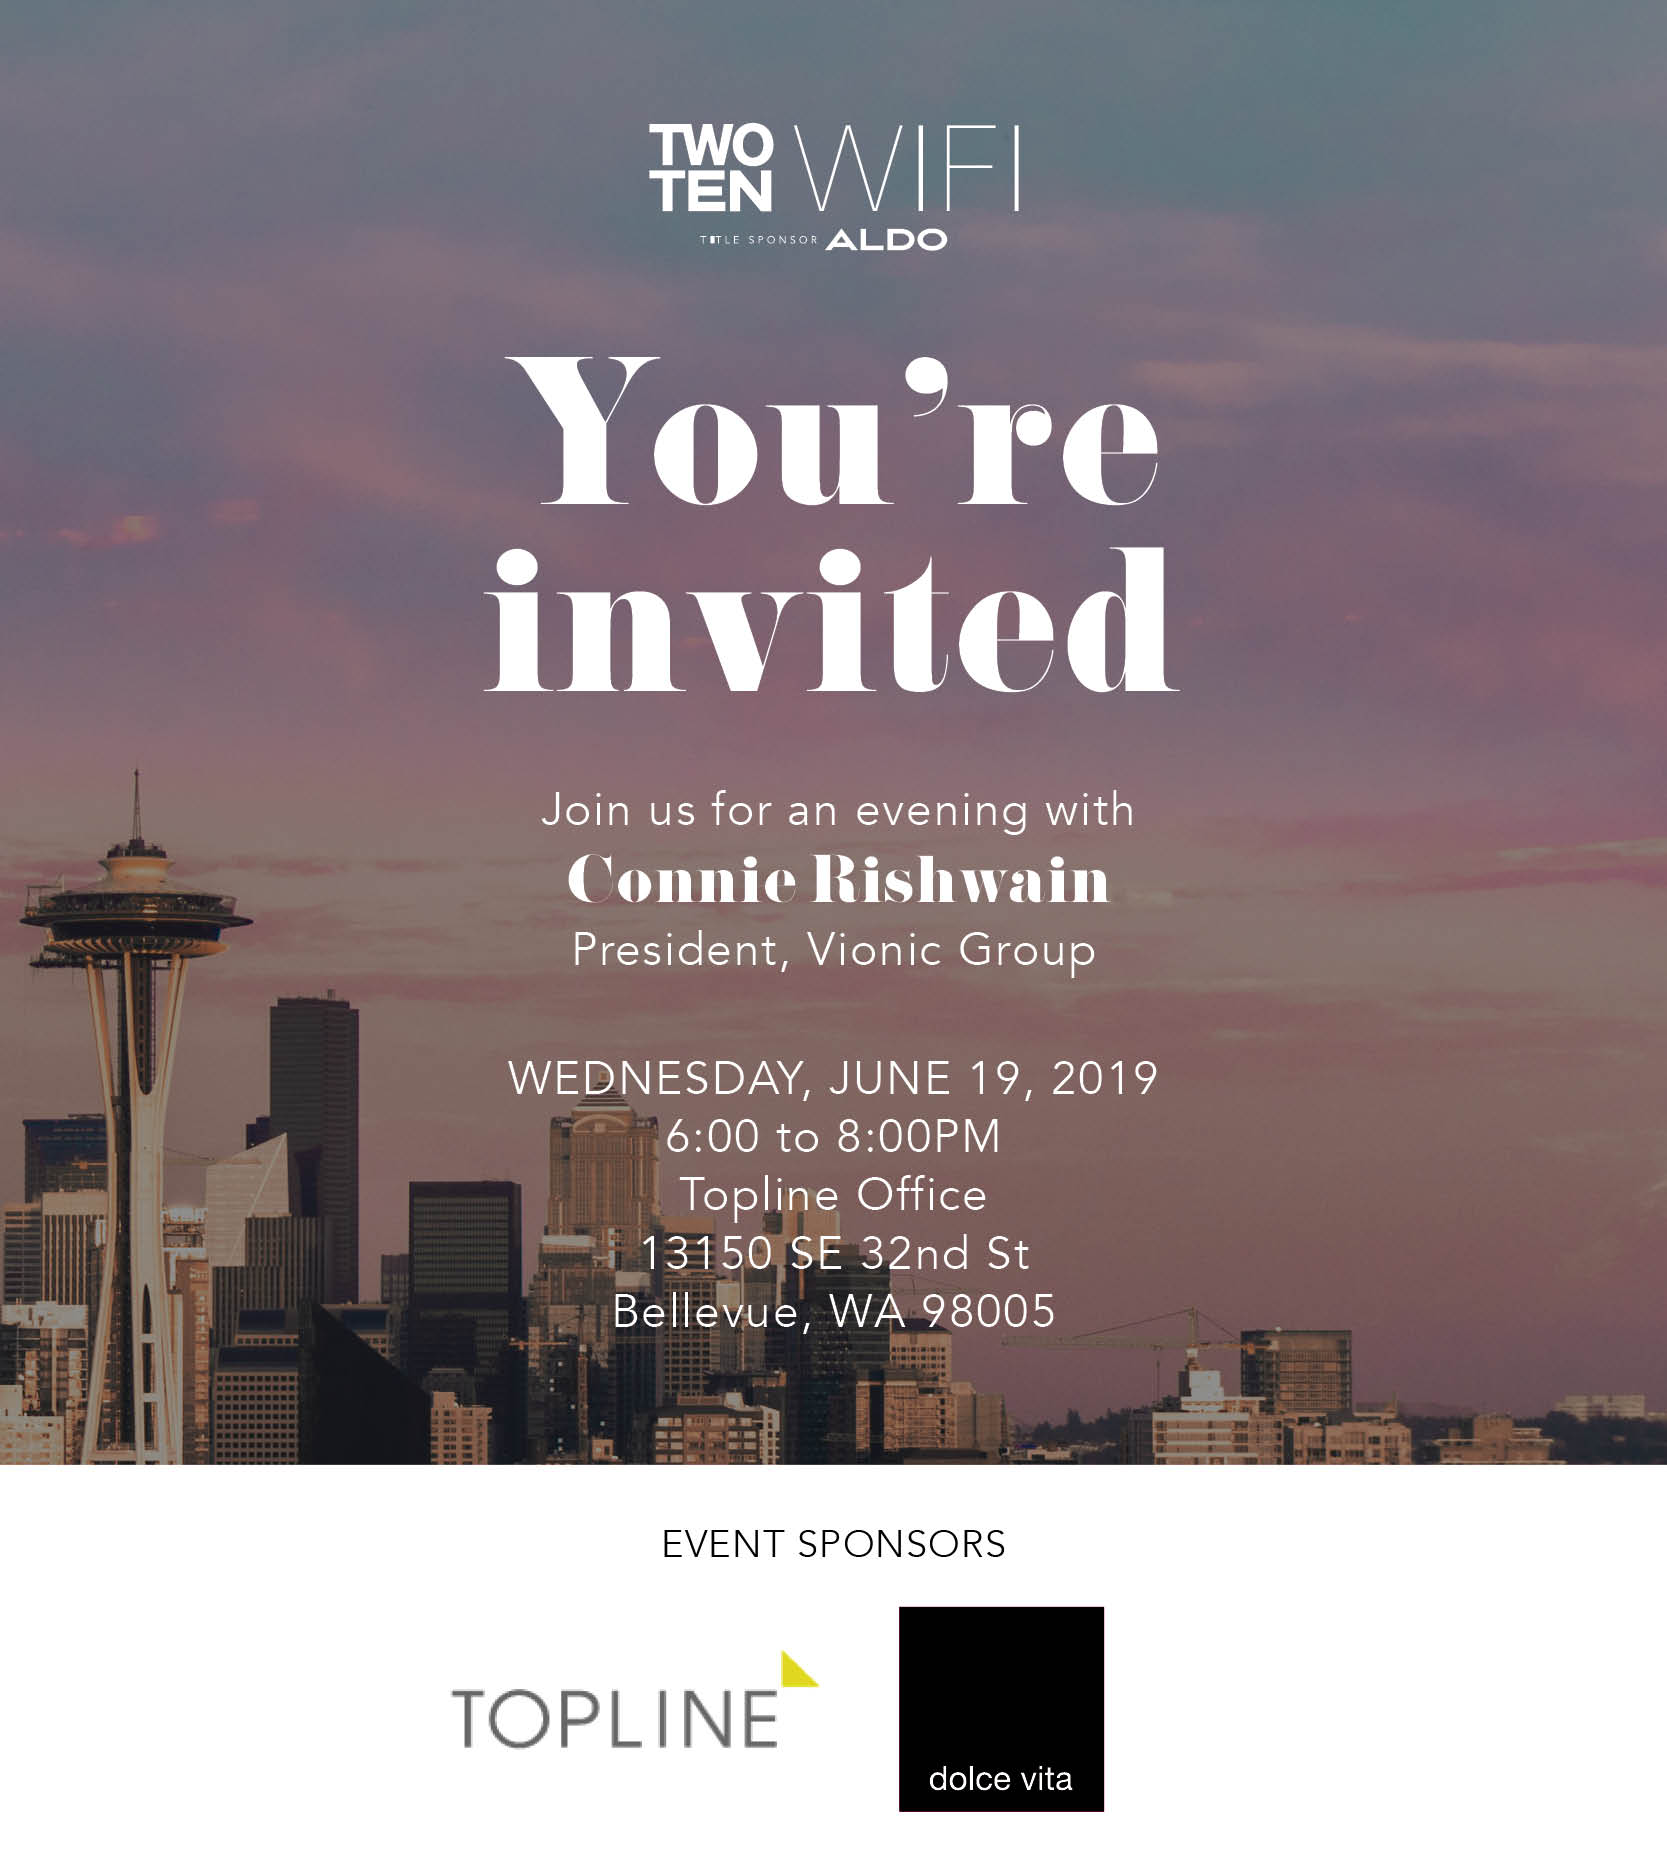 WIFI Seattle: An Evening with Connie Rishwain @ Topline Office | Bellevue | Washington | United States